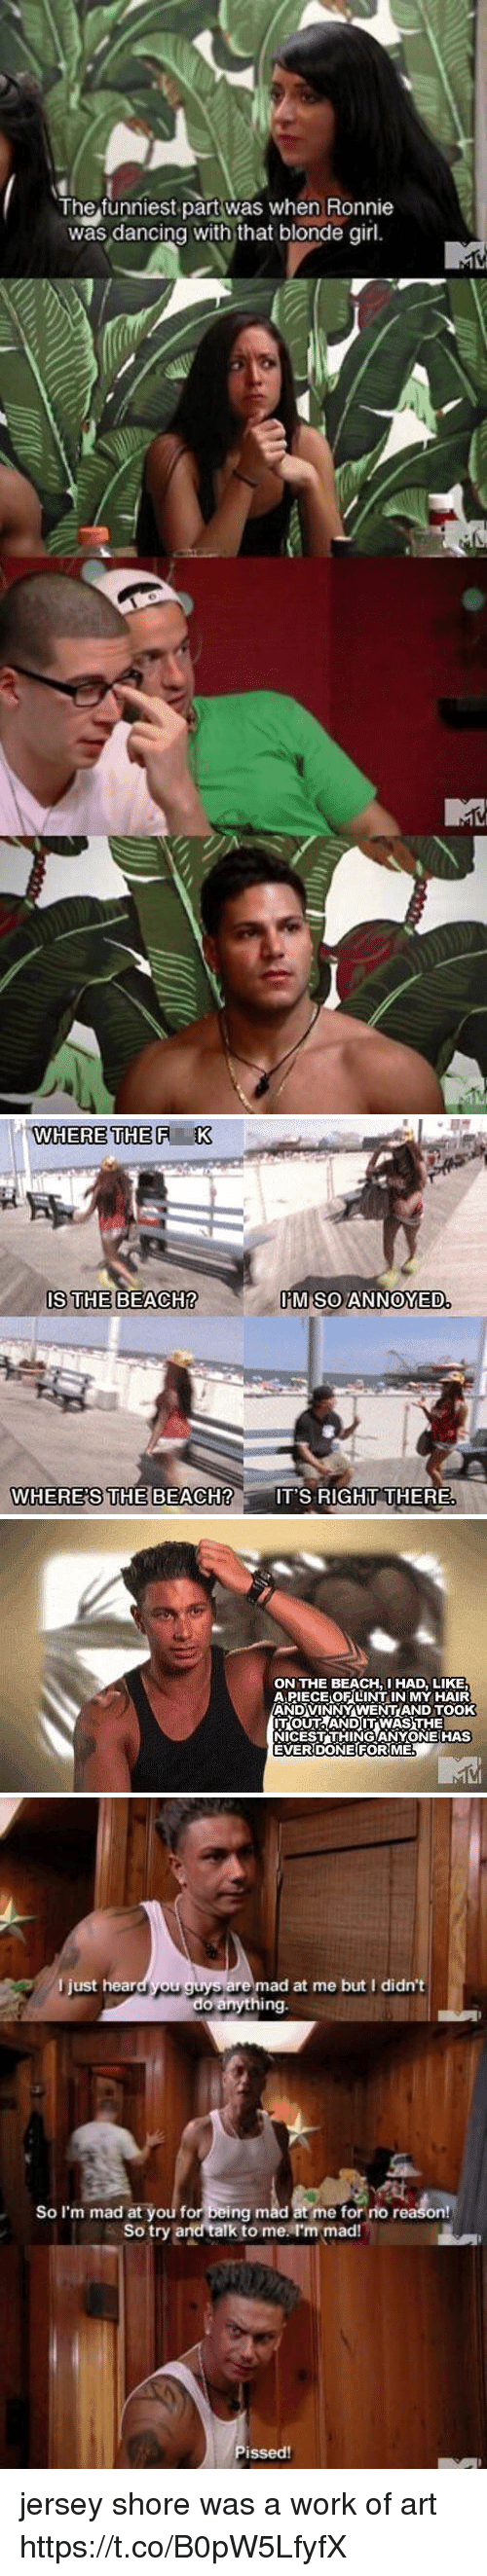 Dancing, Work, and Beach: The funniest part was when Ronnie  was dancing with that blonde girl   WHERE THE F K  IS THE BEACH?  M SOANNOYED  WHERE'S  CH?IT'S RIGHT THERE   ON THE BEACH, HAD, LIKE  APIECEO팃LINT IN MY HAIR  ANDVINNÝ WENTAND TOOK  ITOUTAANDITWAS THE  NICESTTHINGANYONE HAS  EVERDONE FORIME   l just heard you guys are mad at me but I didn't  do anything.  So I'm mad at you for being mad at me for rio reason!  So try and talk to me I'm mad!  issed! jersey shore was a work of art https://t.co/B0pW5LfyfX